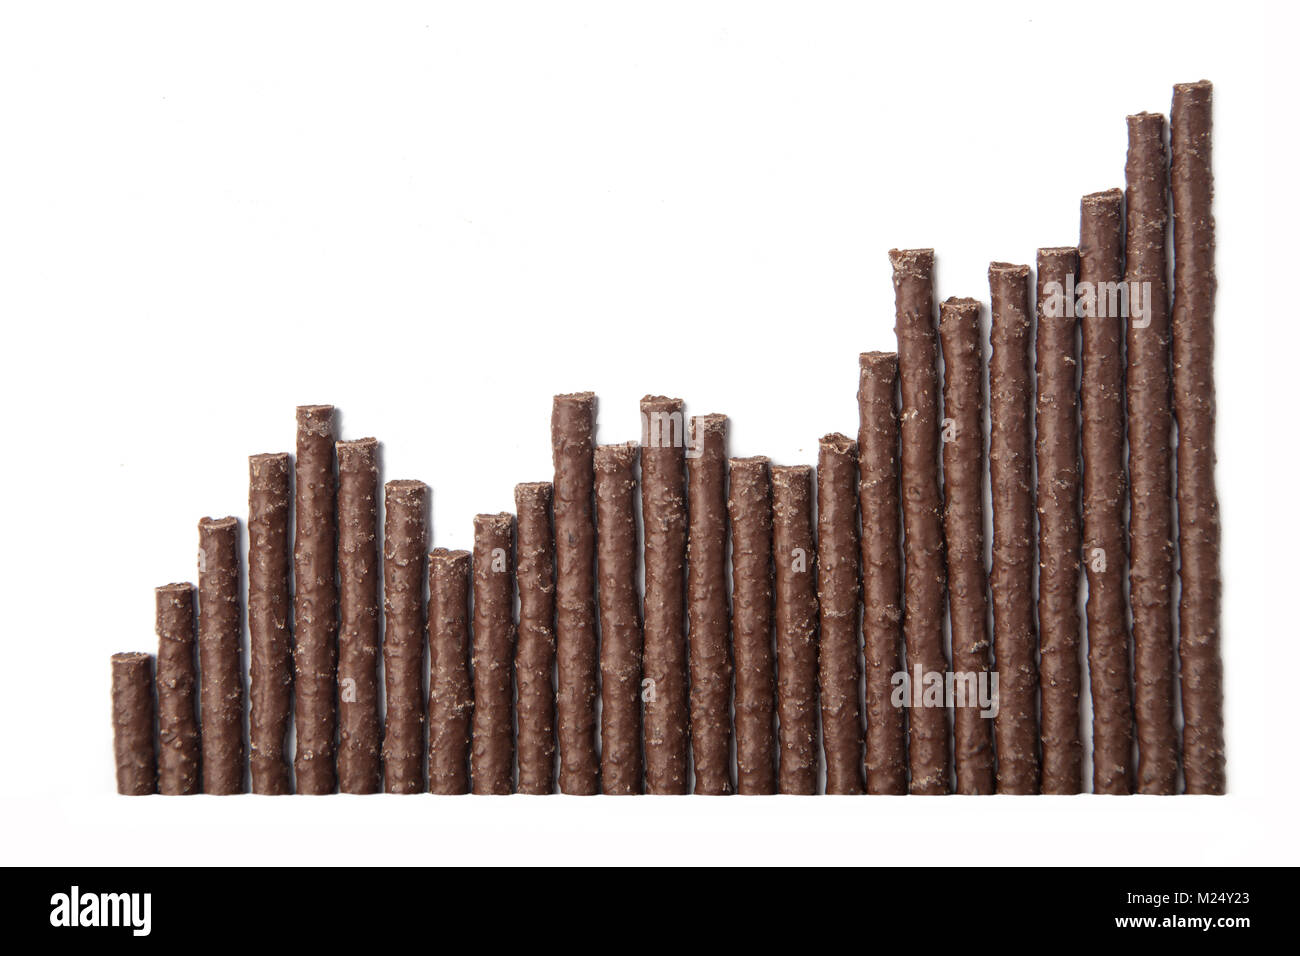 Chocolate Flavoured Stick Candy arranged as graph - Stock Image